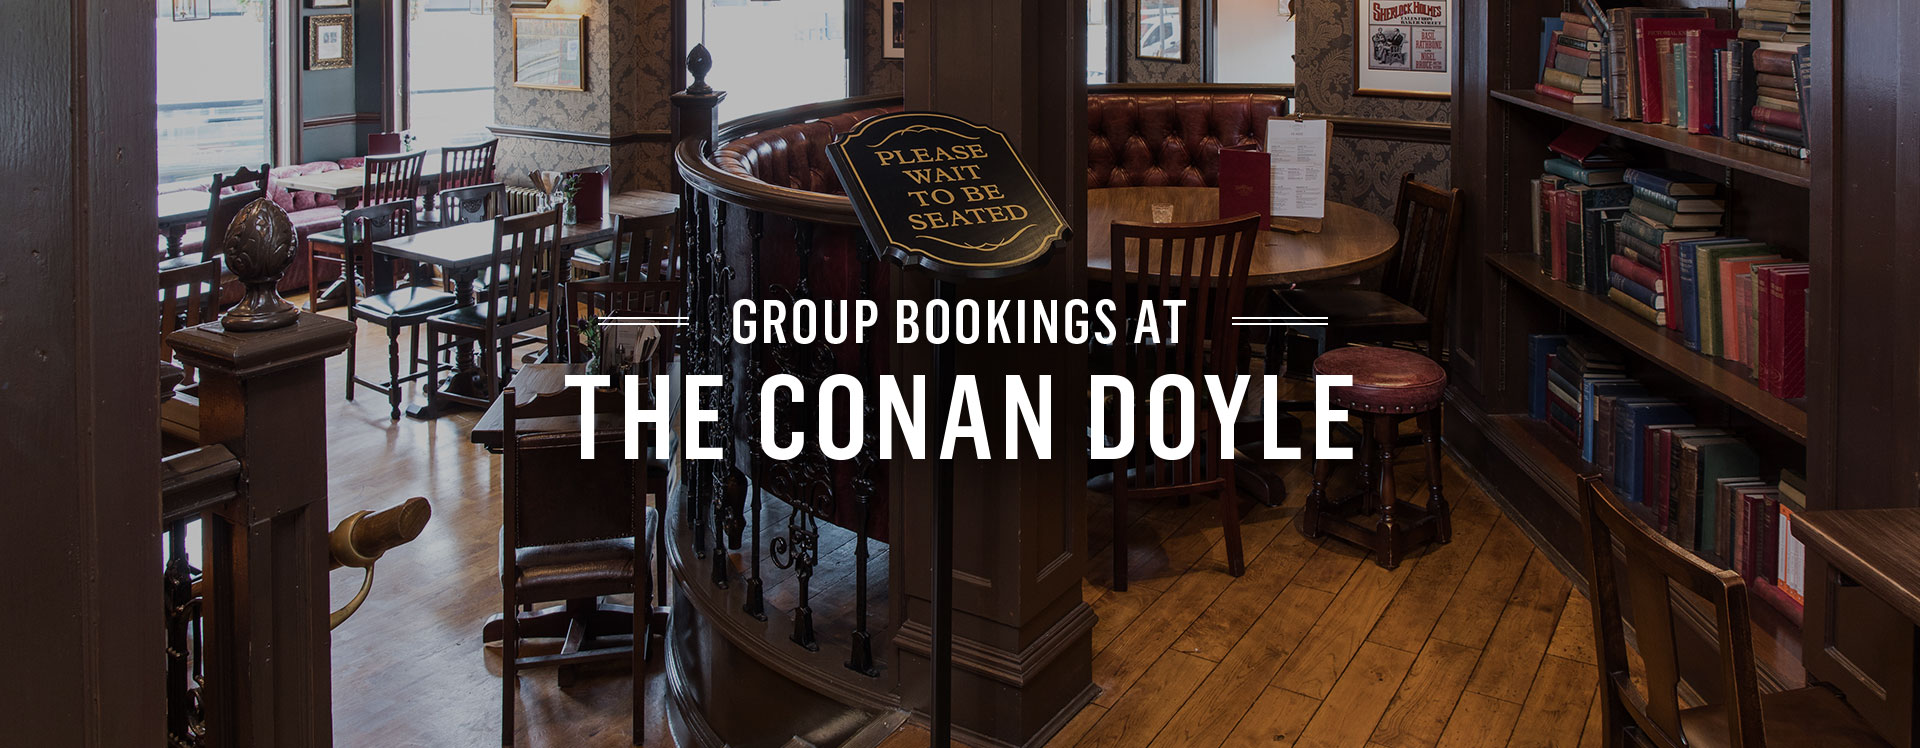 Group Bookings at The Conan Doyle